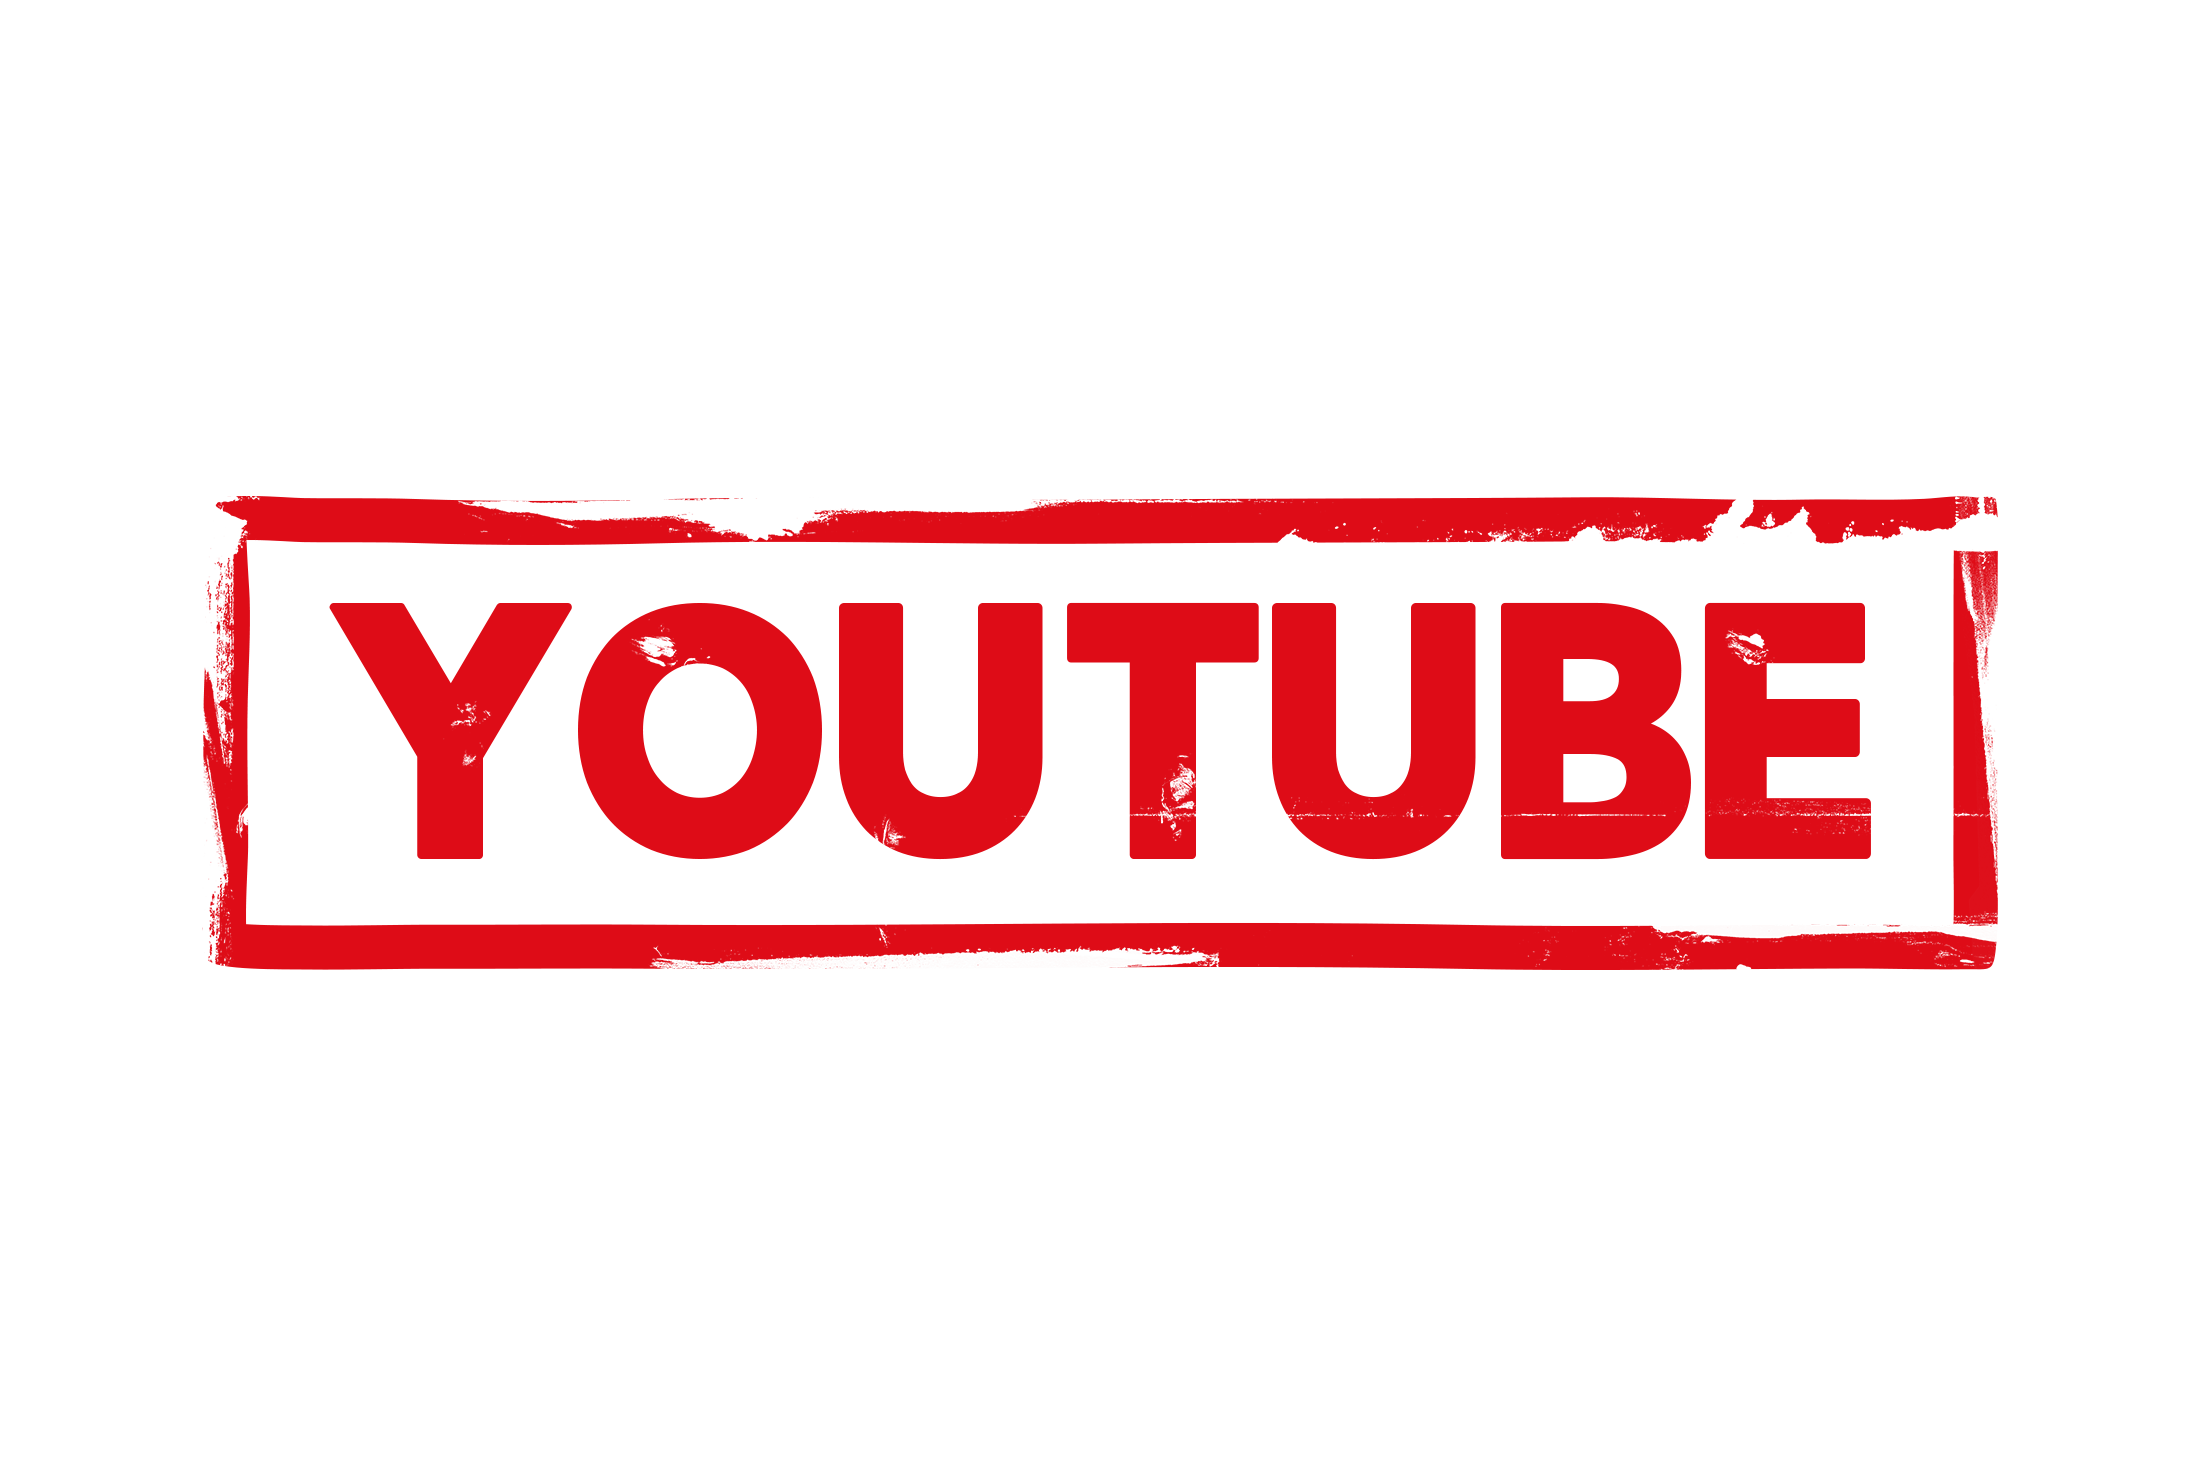 Youtube stamp PSD